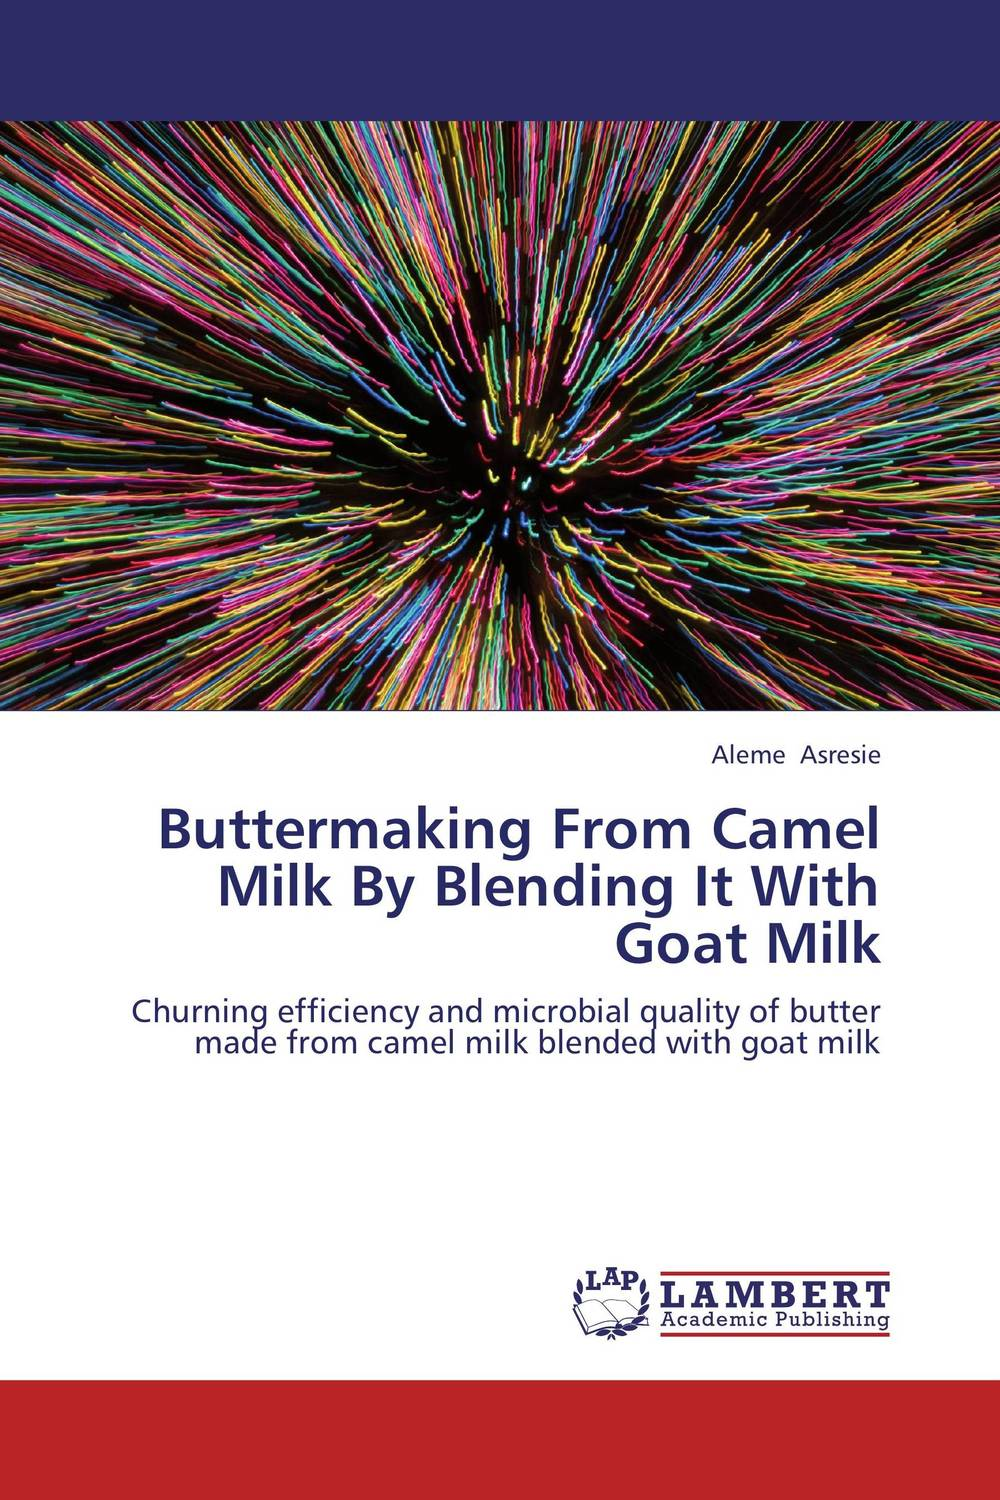 Buttermaking From Camel Milk By Blending It With Goat Milk